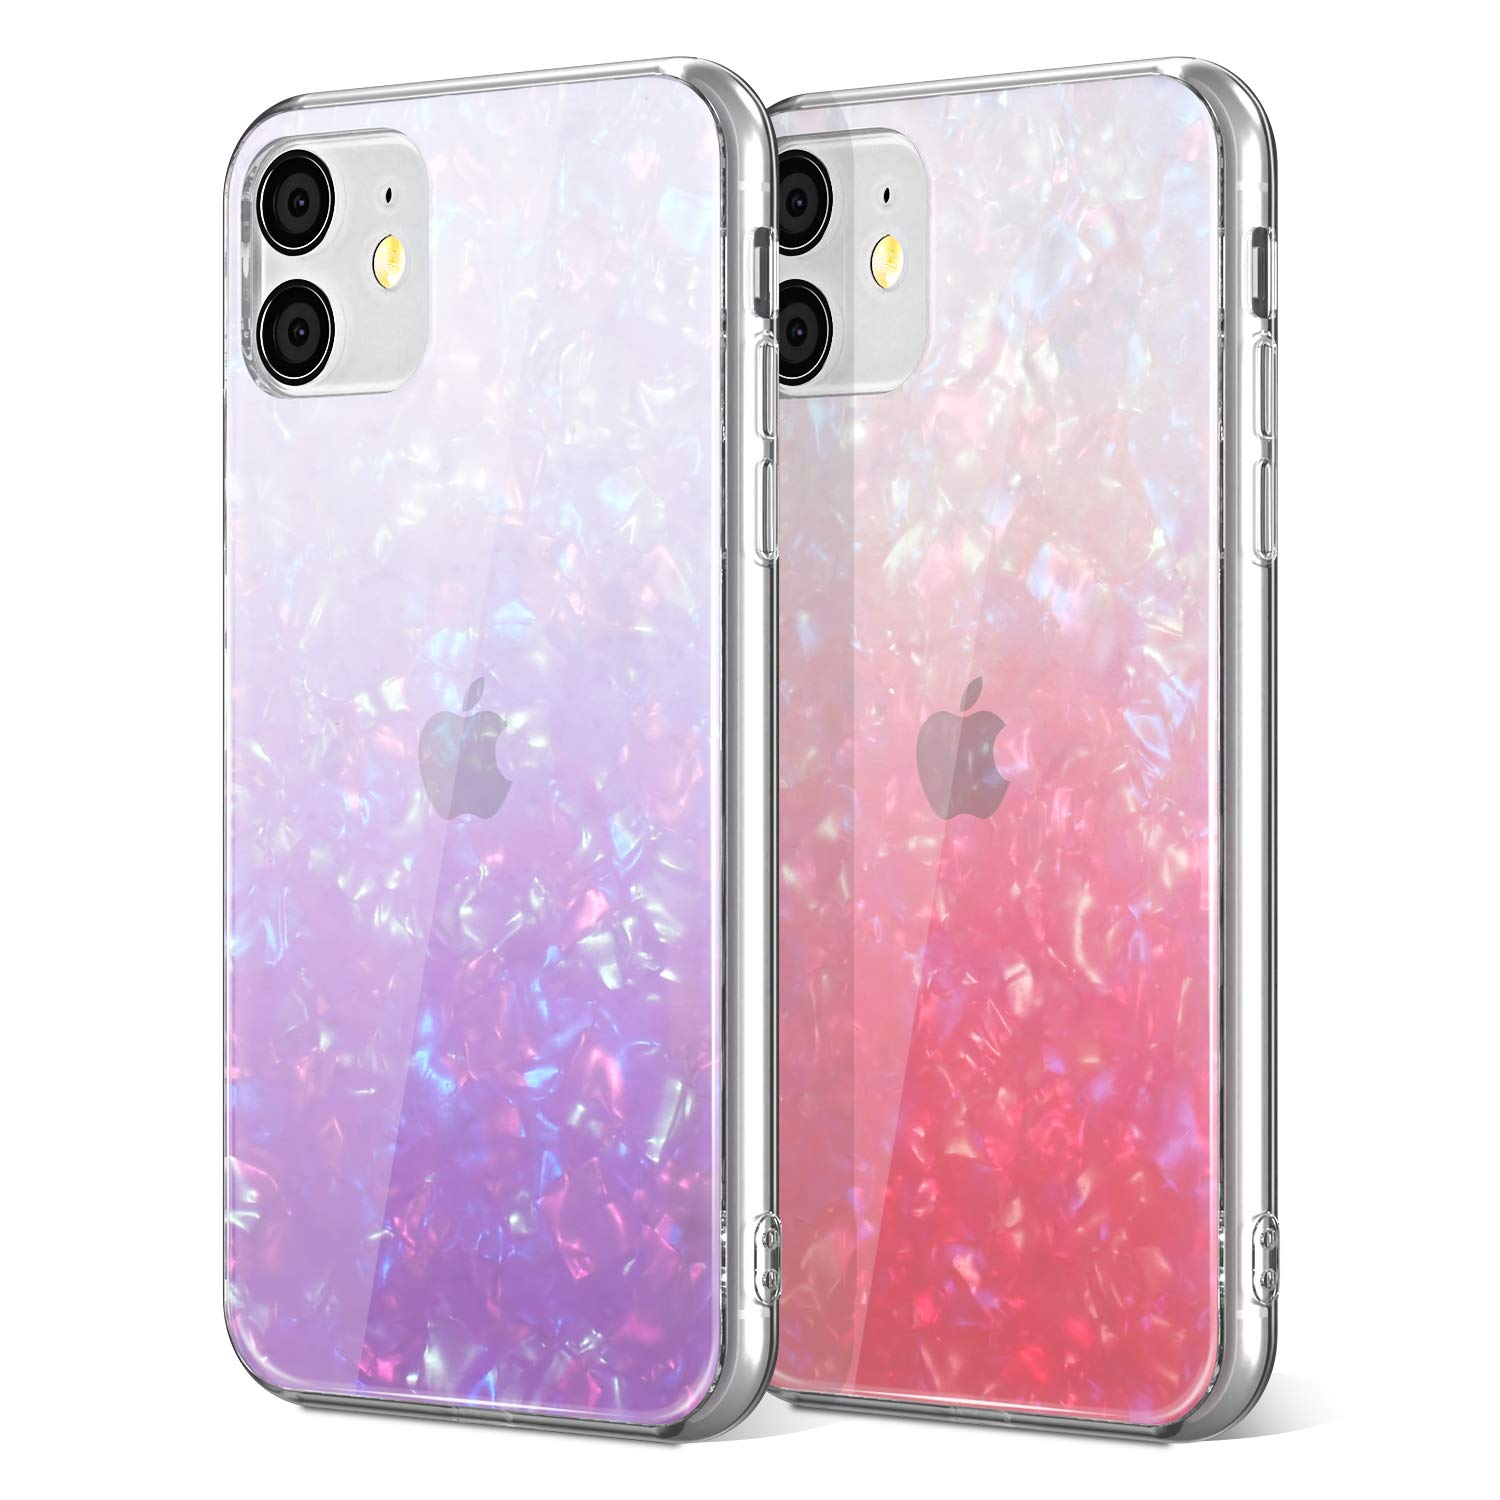 EYZUTAK 2 Pack Glitter Case for iPhone 11 Pro Max 6.5 inch, Slim Soft TPU Silicone Shockproof Protective Cover Shining Fashion Marble Shell Style - Pink & Purple